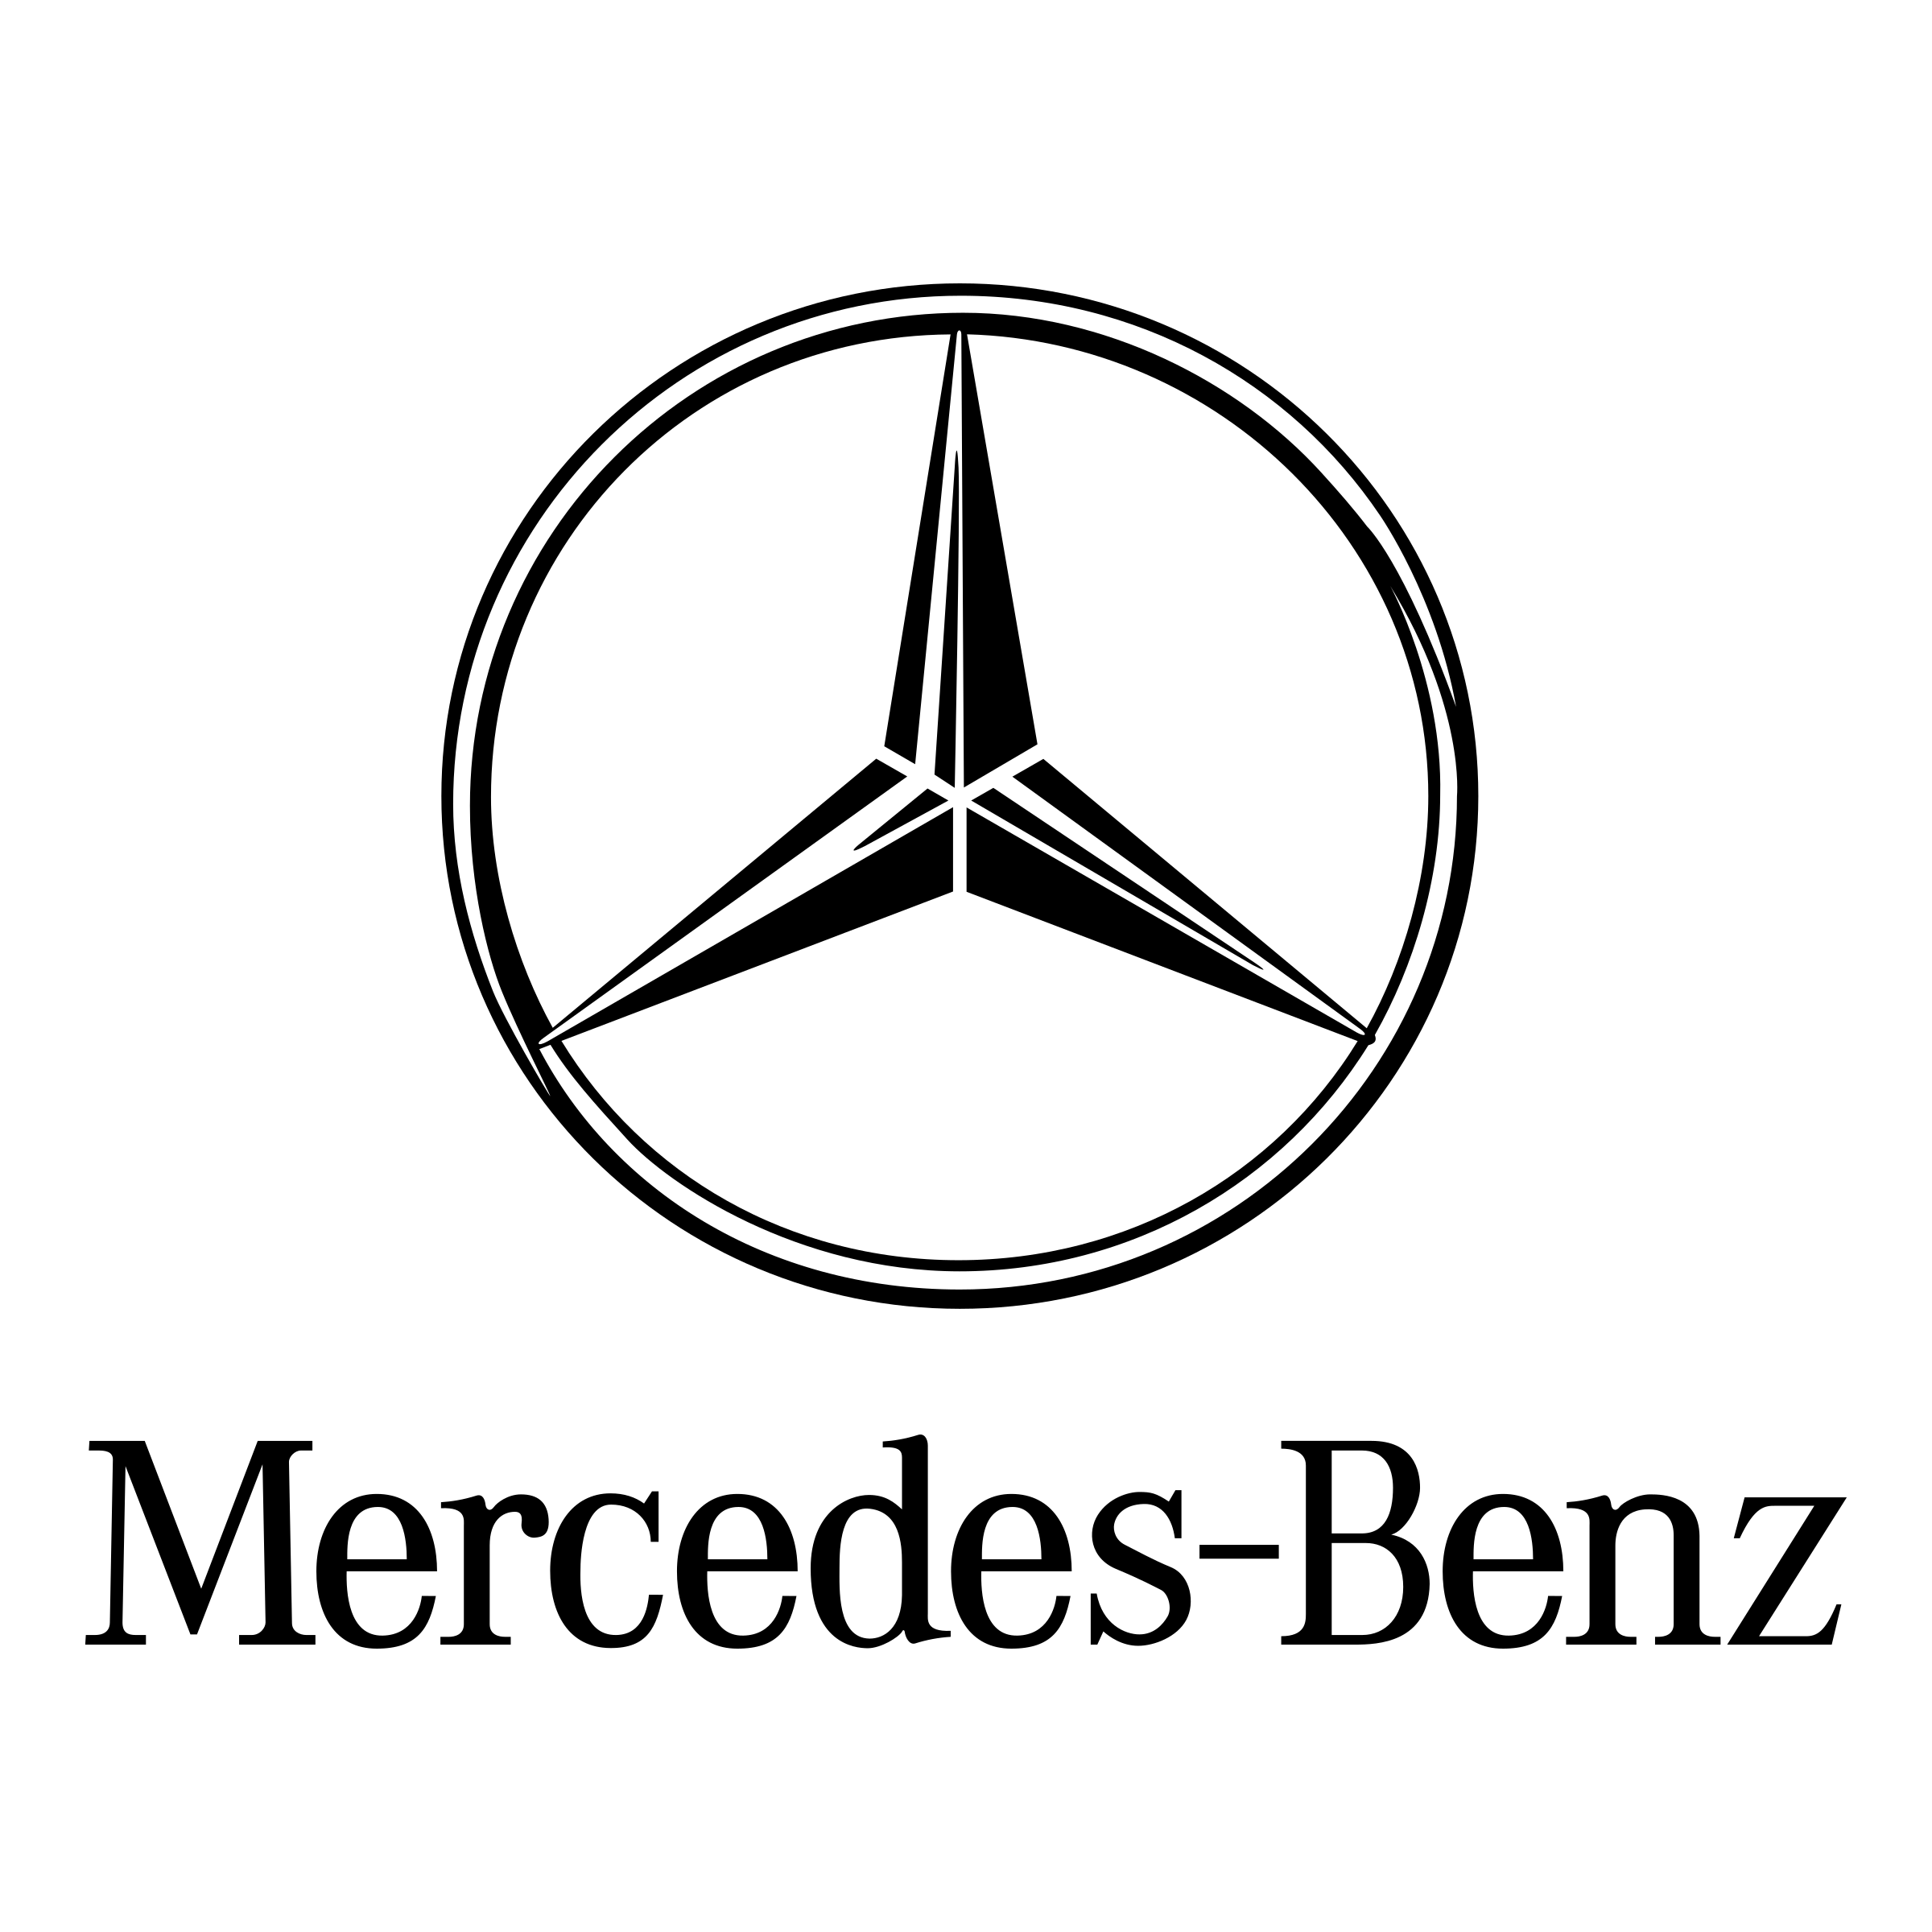 """MercedesBenz(automotive) - January 20151,000 jobs leaving Montvale for Georgia""""The lure of lower taxes, a cheaper cost of living, more access to critical transportation networks, key manufacturing plants and about $50 million in incentives has sealed it –– German automaker Mercedes-Benz is departing Bergen County for Atlanta."""""""